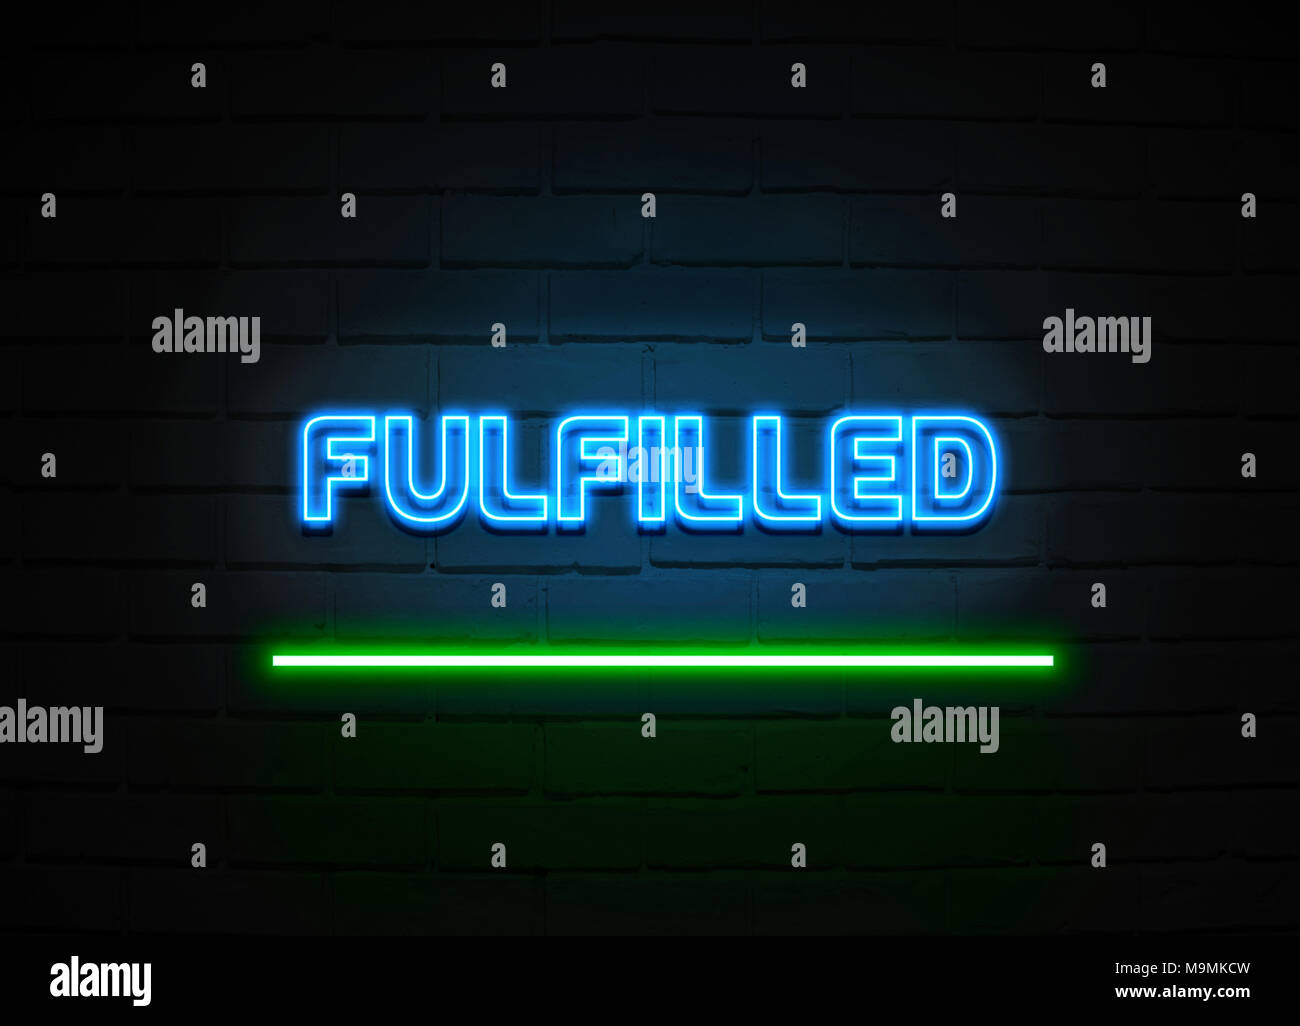 Fulfilled neon sign - Glowing Neon Sign on brickwall wall - 3D rendered royalty free stock illustration. - Stock Image